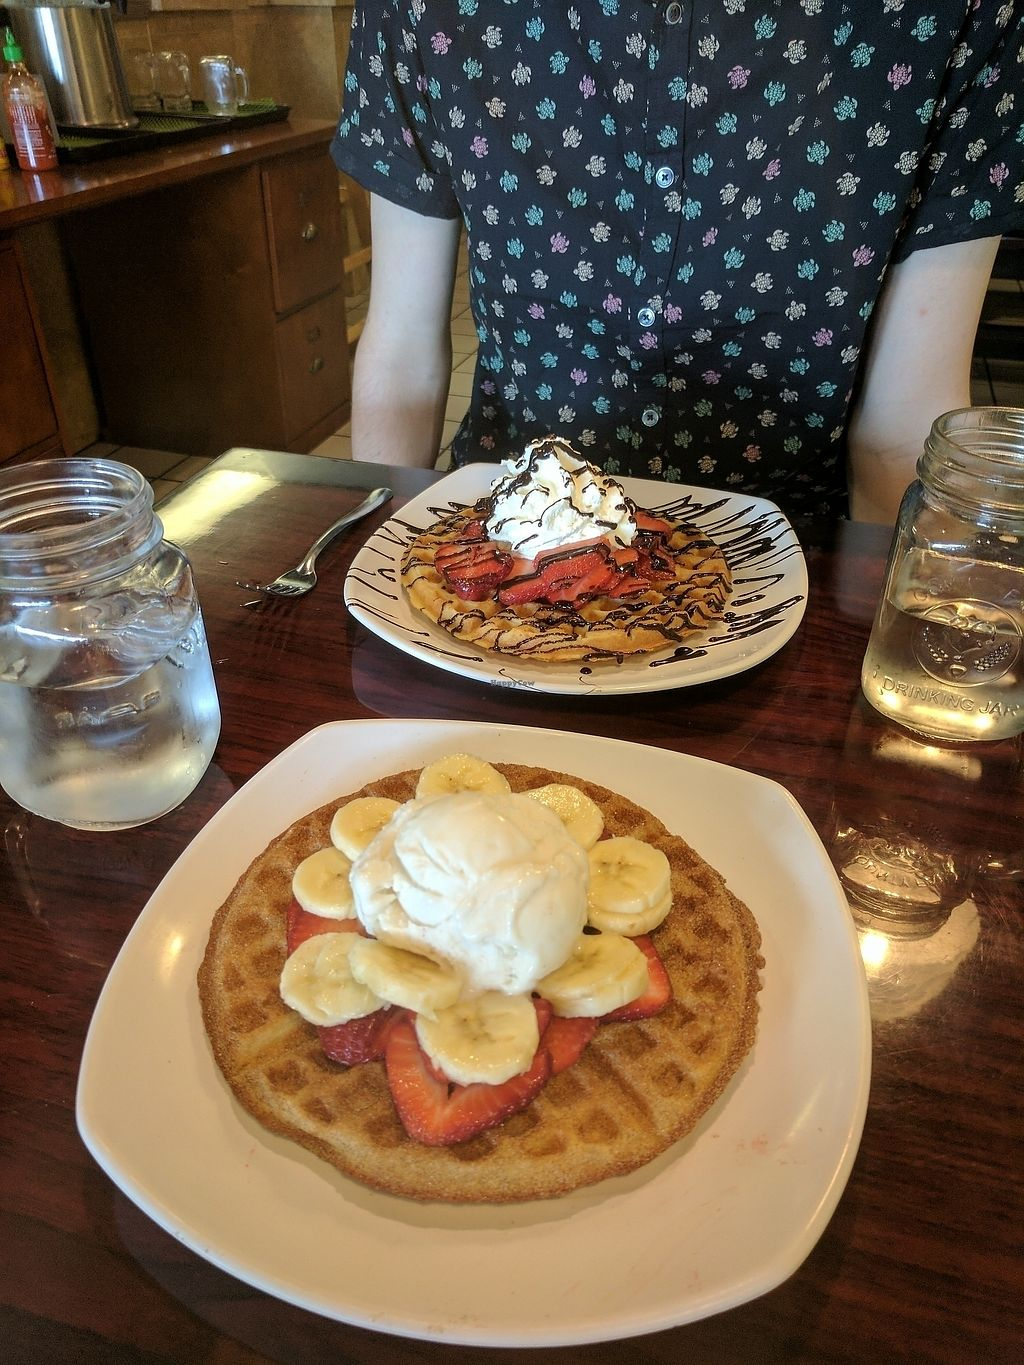 """Photo of Tiabi Coffee and Waffle Bar  by <a href=""""/members/profile/Taylorkaykreider"""">Taylorkaykreider</a> <br/>Vegan Waffle (and a non-vegan covered in chocolate) <br/> July 13, 2017  - <a href='/contact/abuse/image/45690/280005'>Report</a>"""